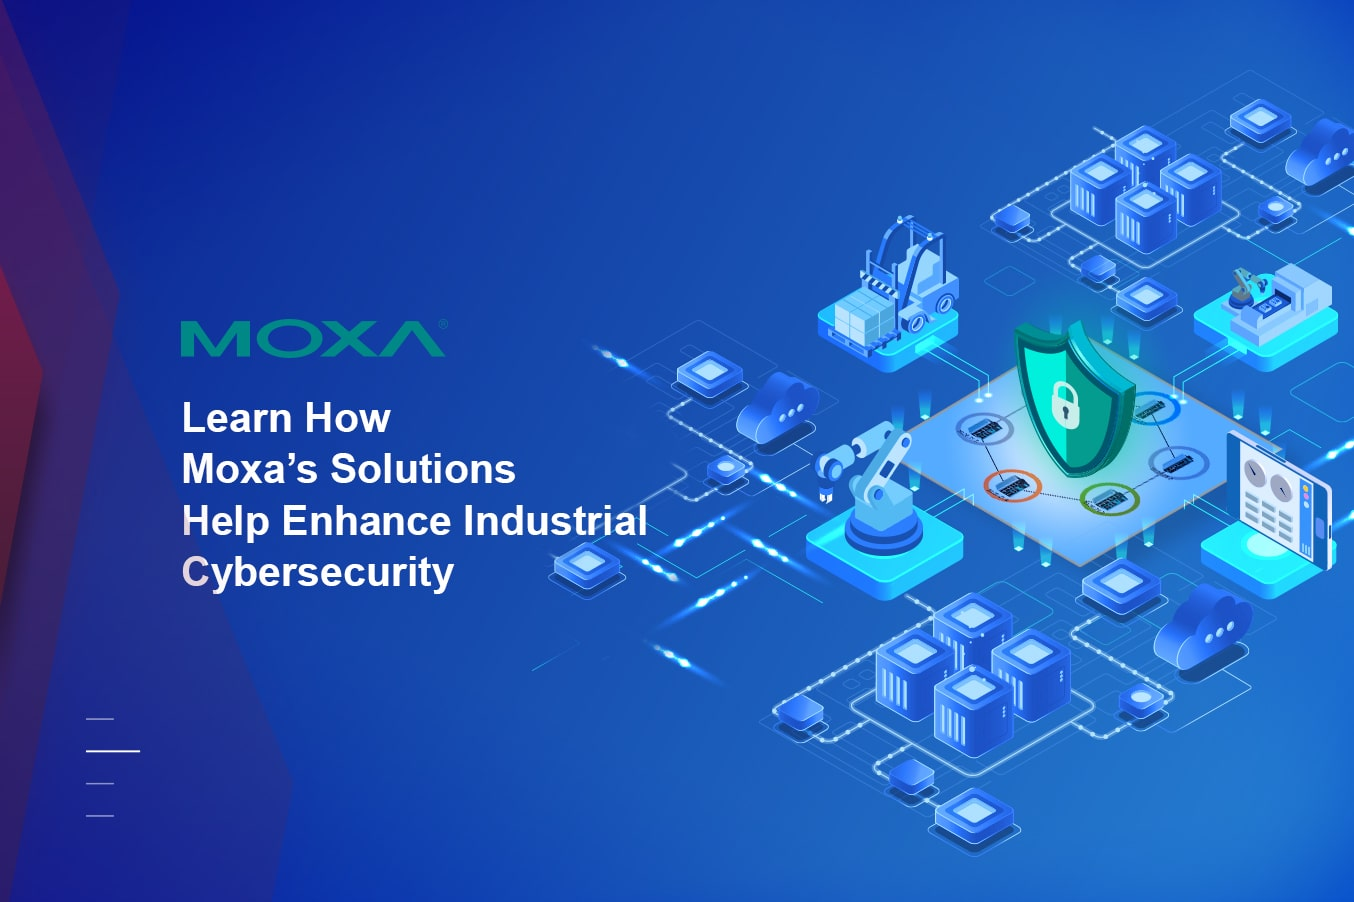 Rockford-Communication-Solutions-Moxa-Learn-How-Moxa-s-Solutions-Help-Enhance-Industrial-Cybersecurity